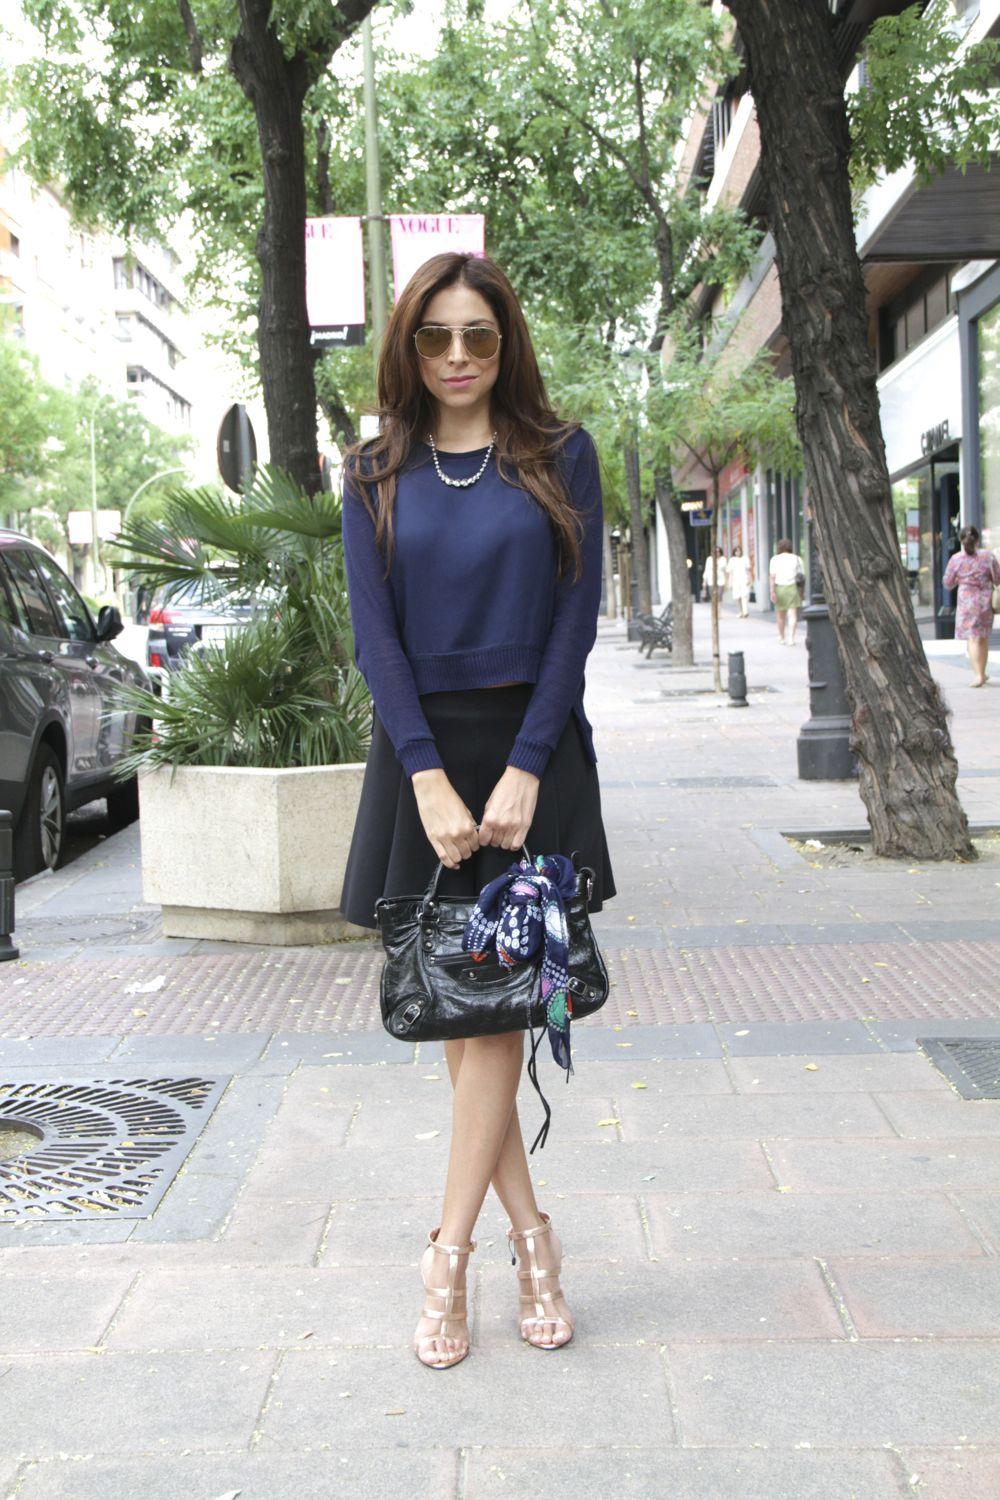 Get the Madrid Street Style look